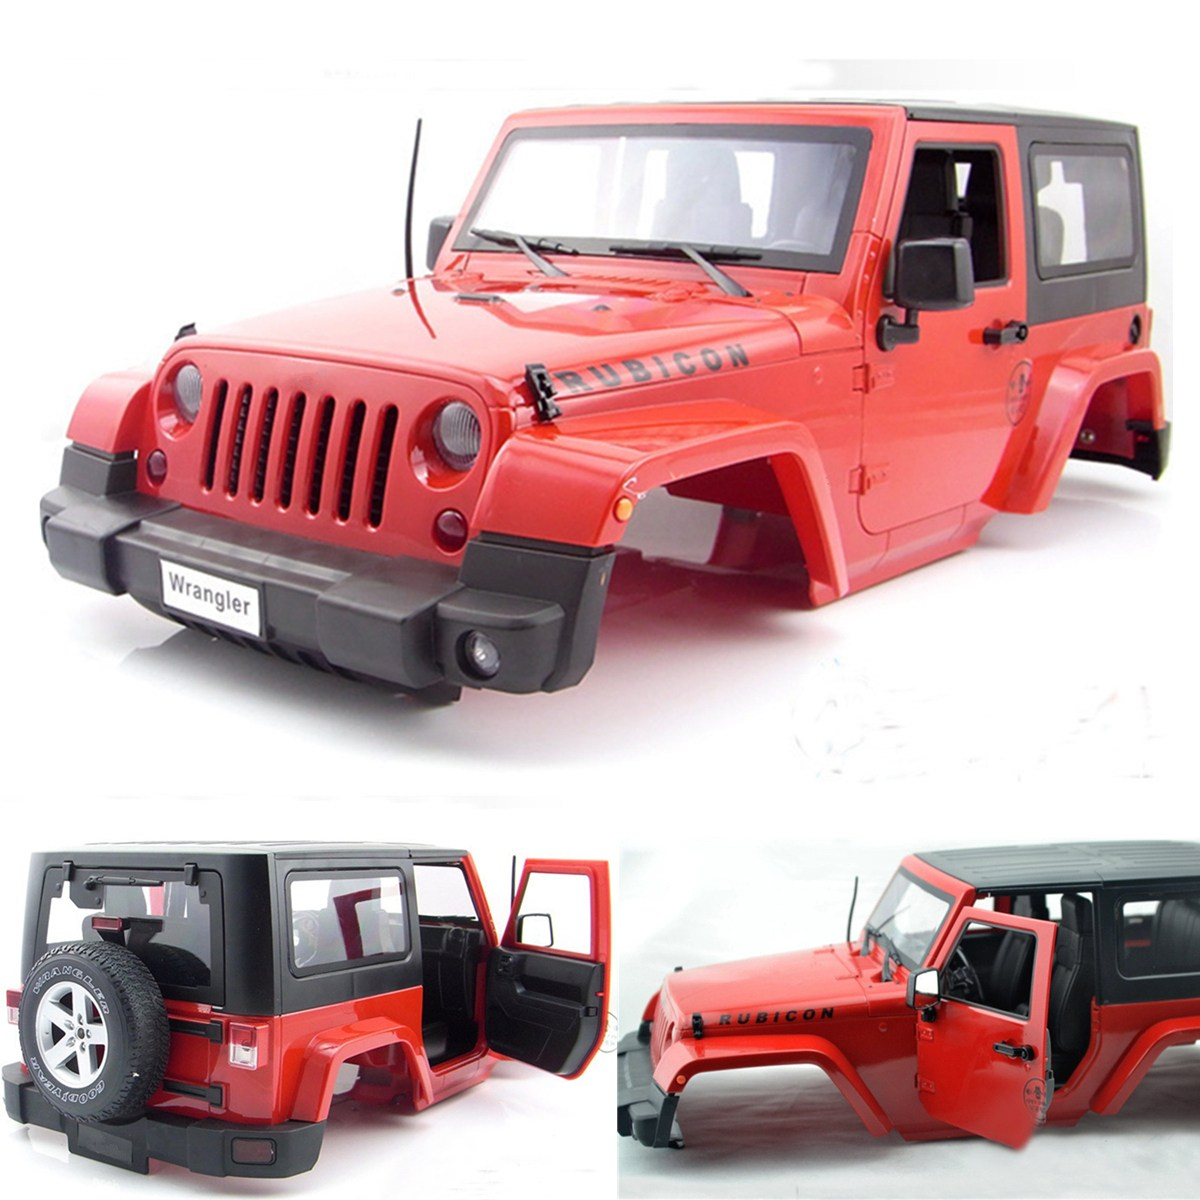 Red Hard Plastic 1:10 BODY SHELL for RC Model Climbing Car SCX10 D90 body jeep jk 1 10 red 1 10 rc crawler rc car hard top d90 body shell of jeep wrangle scx10 d90 90020 90021 90018